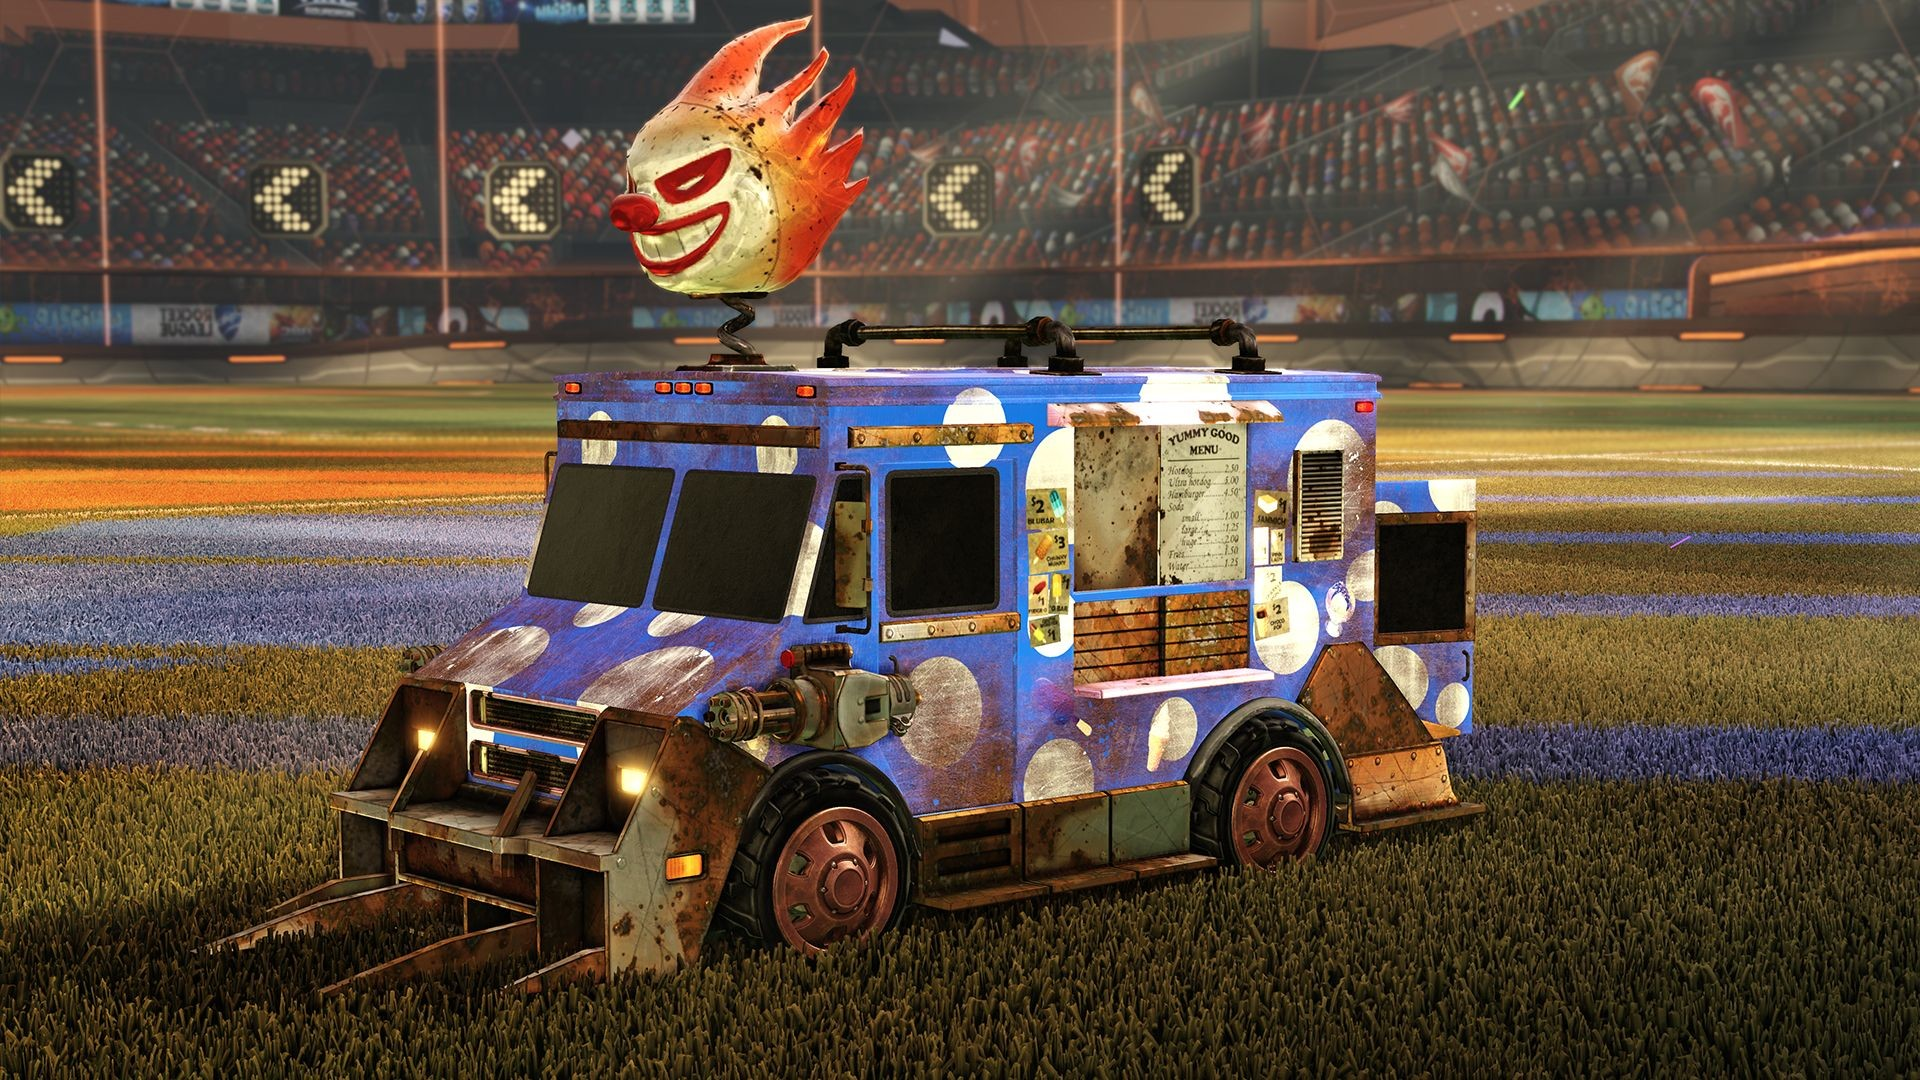 Twisted Metal Sweet Tooth Wallpaper (71+ images)